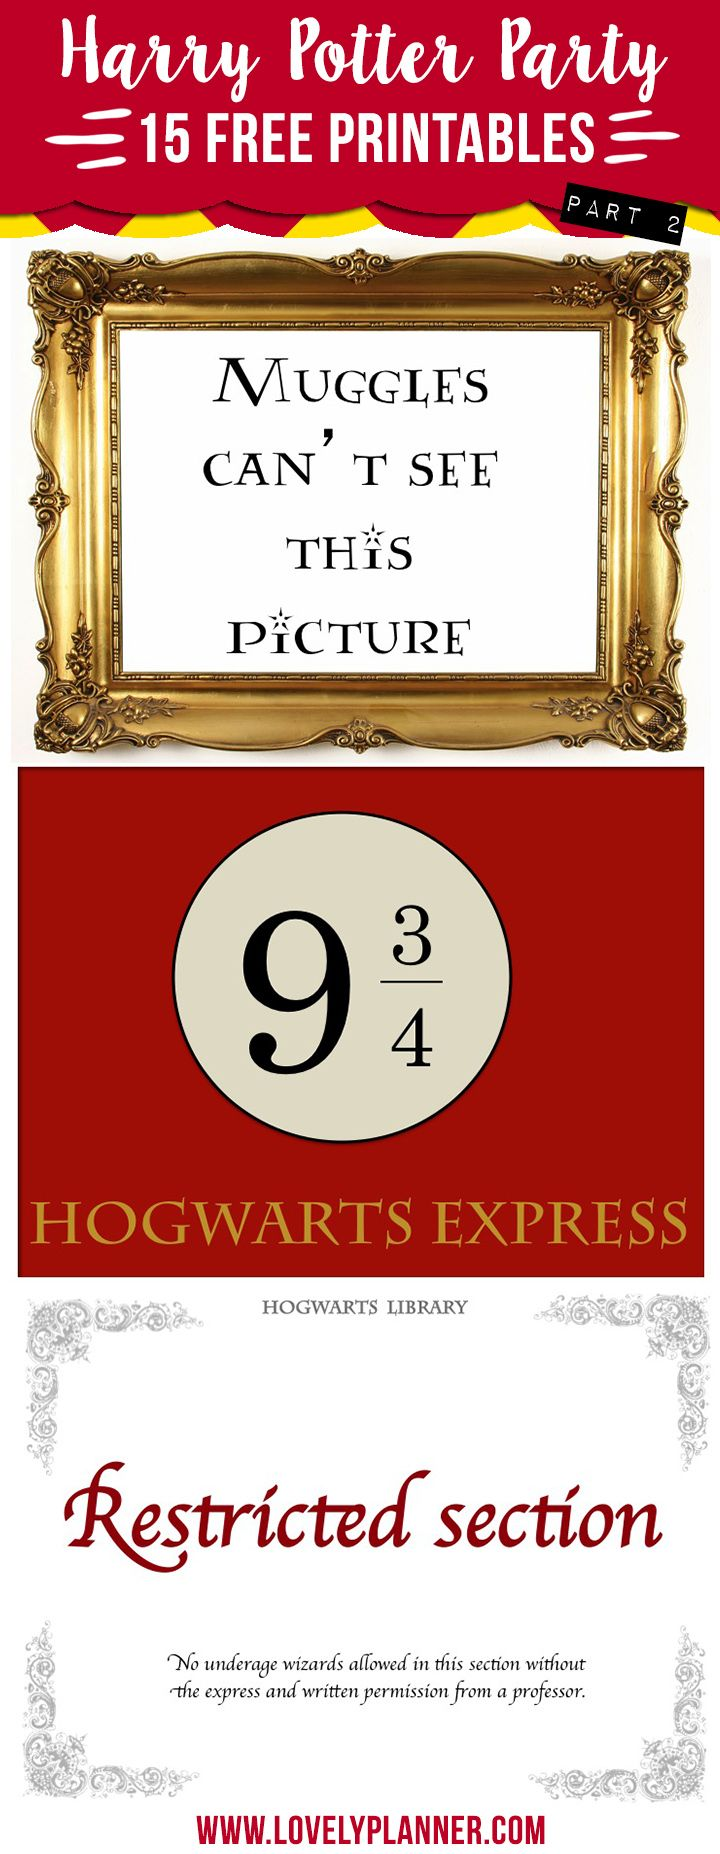 Download 15 free Harry Potter party printables for your next HP themed party! Muggles can't see this picture, platform 9 34, restricted section...